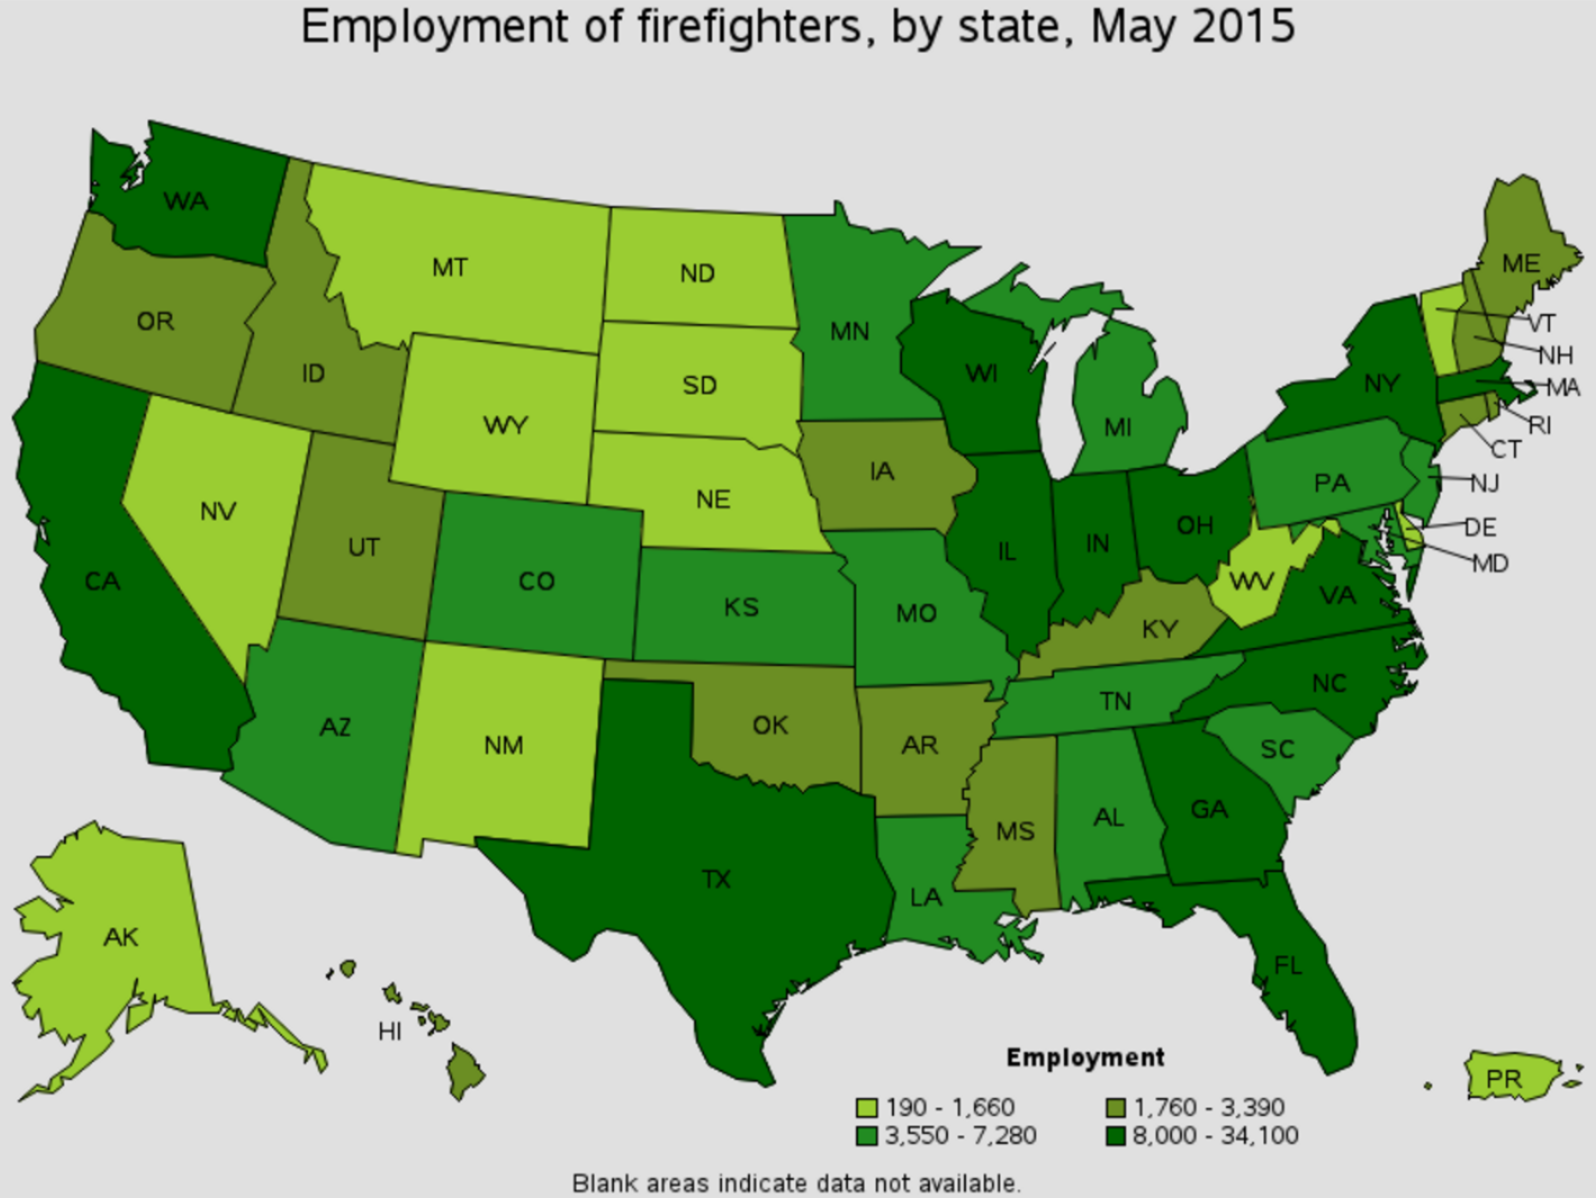 firefighter job outlook by state Wrightstown Wisconsin